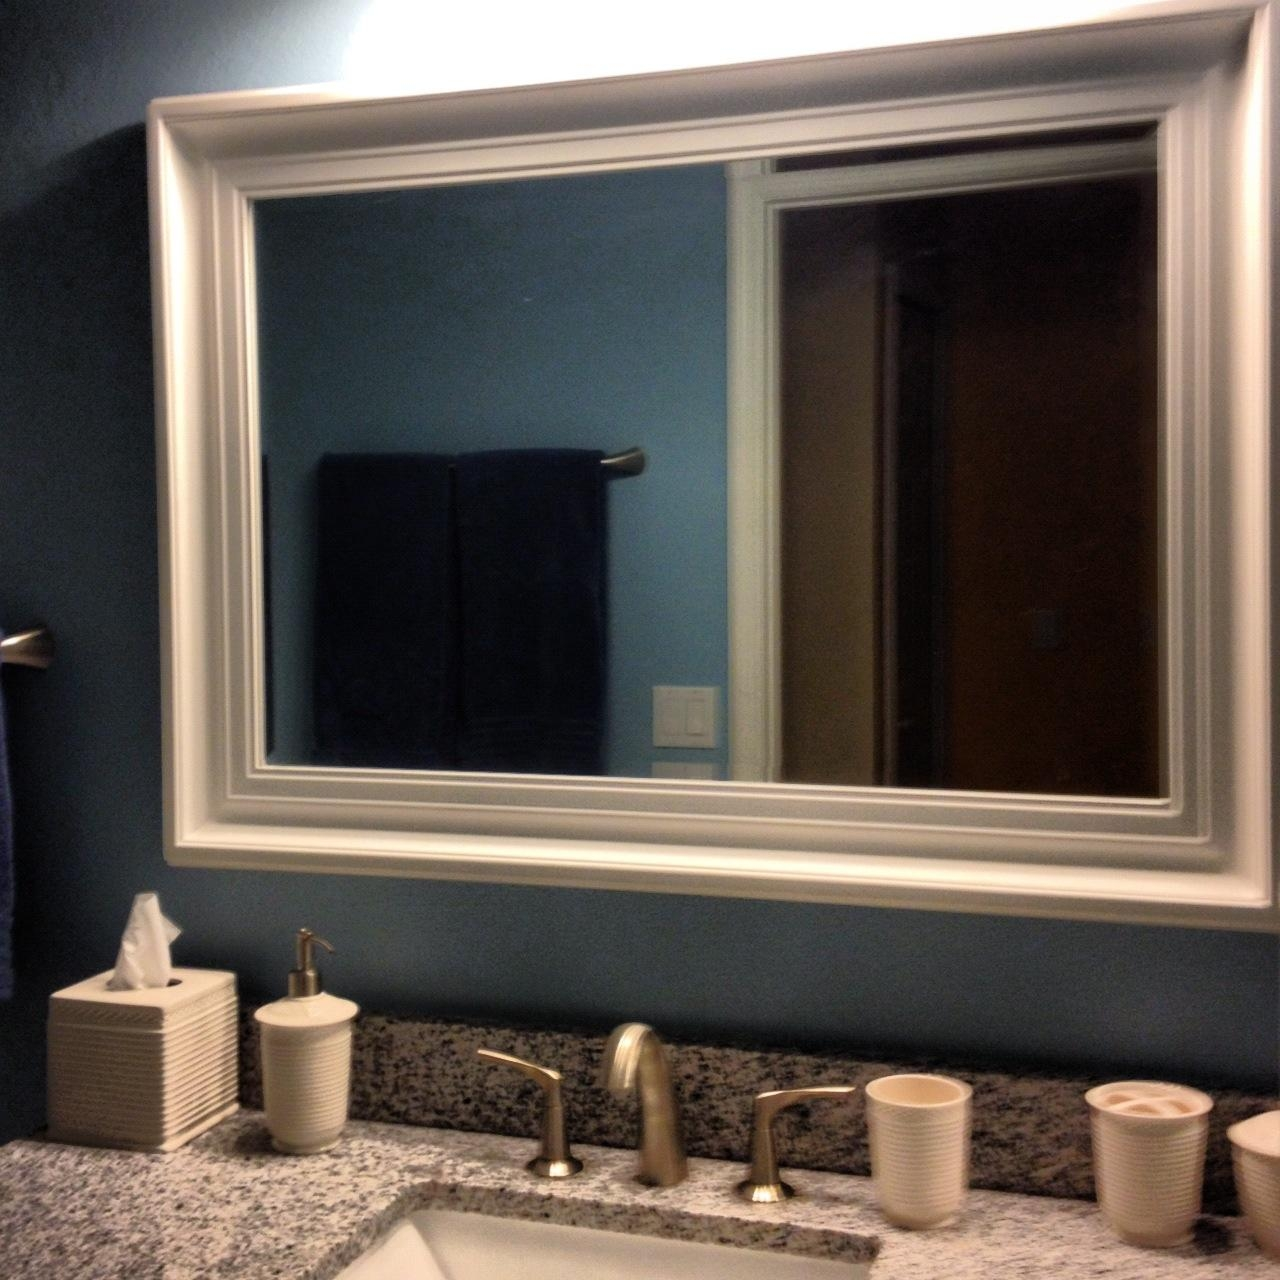 Bathroom Mirror Frames | Home Designjohn Regarding Frames Mirrors (Image 3 of 20)